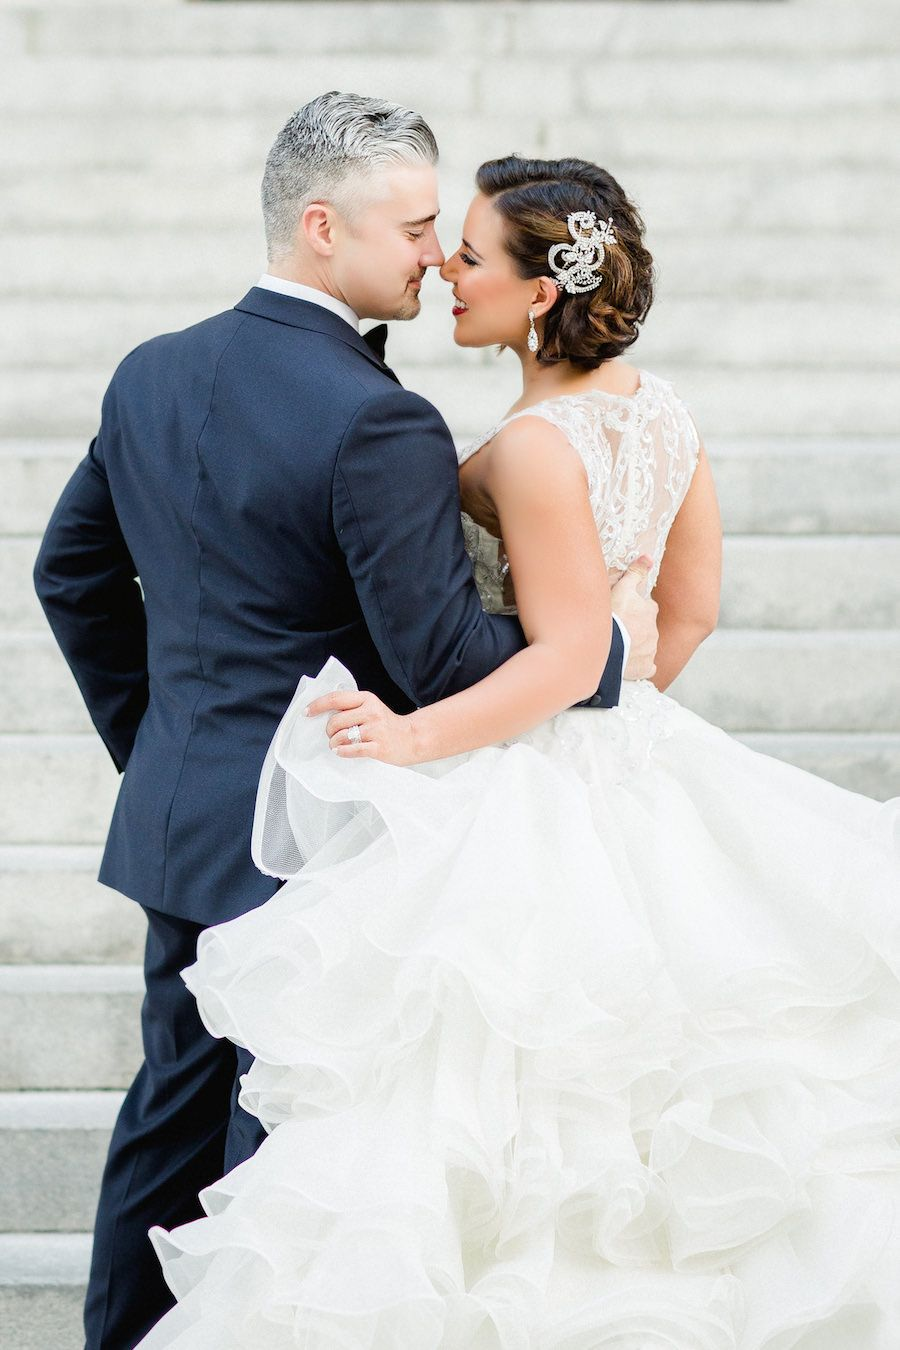 Tampa Bride And Groom Wedding Portrait In Ivory Mermaid Ines DiSanto Dress From Isabel O